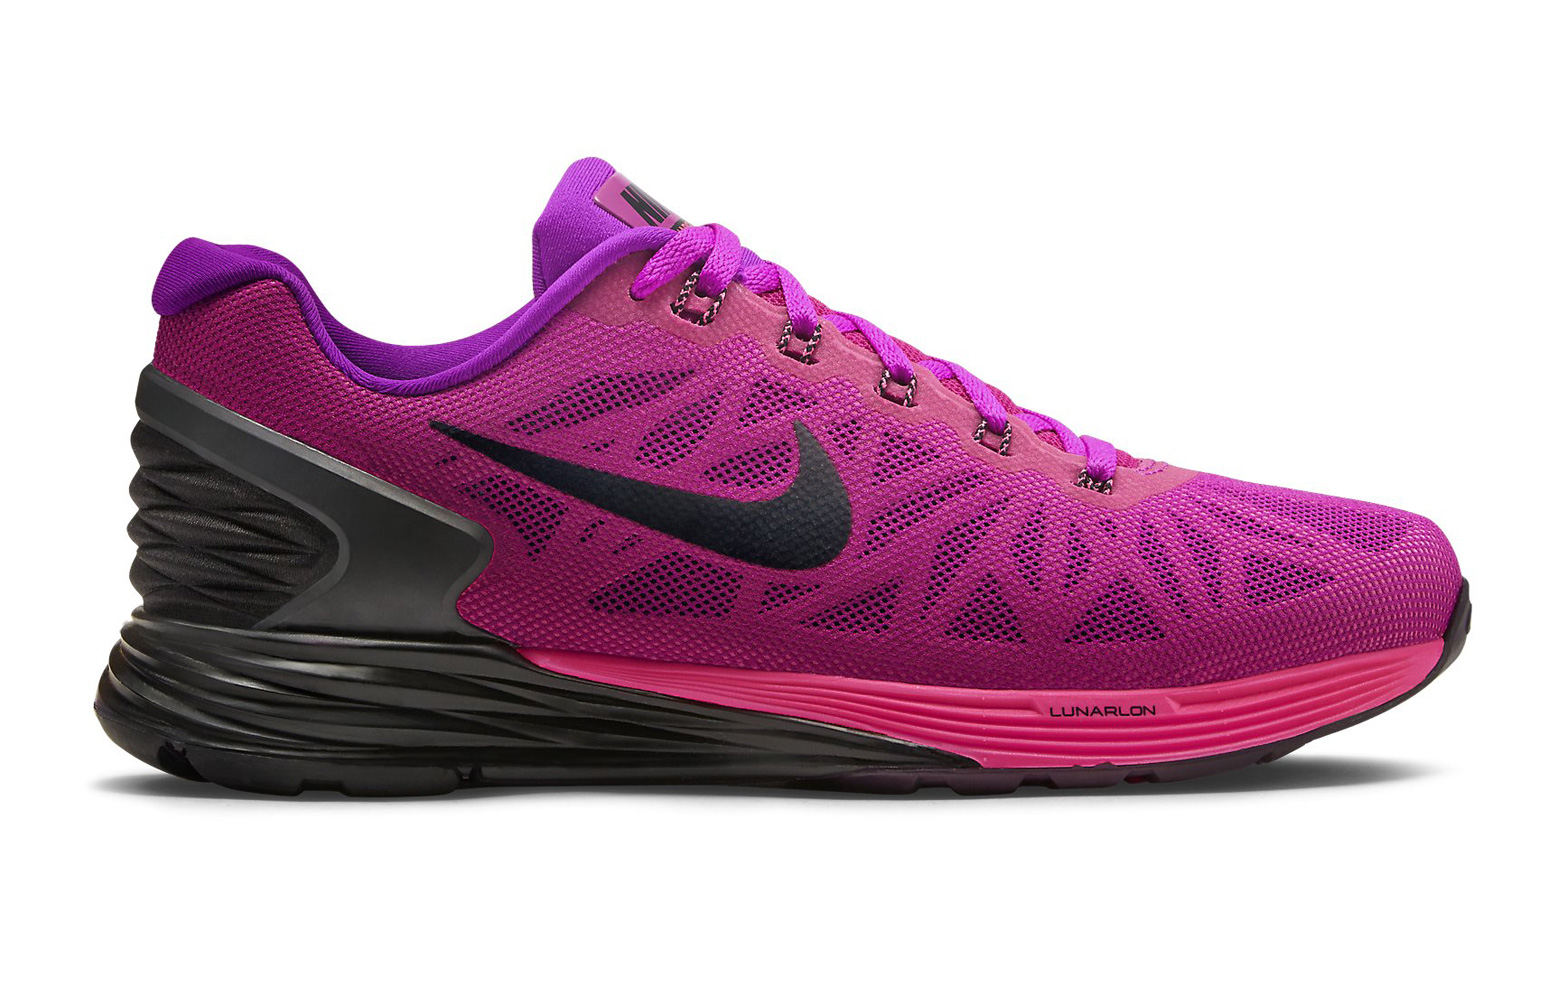 new product 56396 2e840 ... canada zapatillas nike lunarglide 6 para mujer 3a822 0d30b